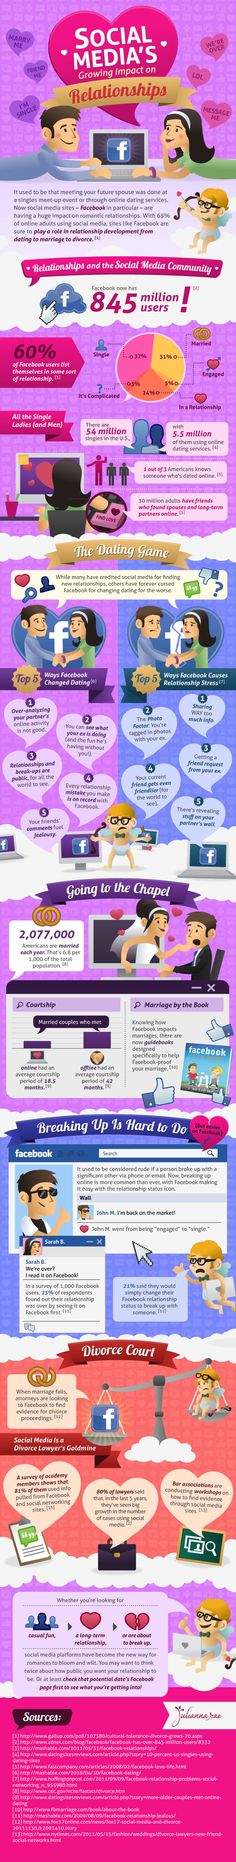 Social Media's Growing Impact on Relationships #Infographic